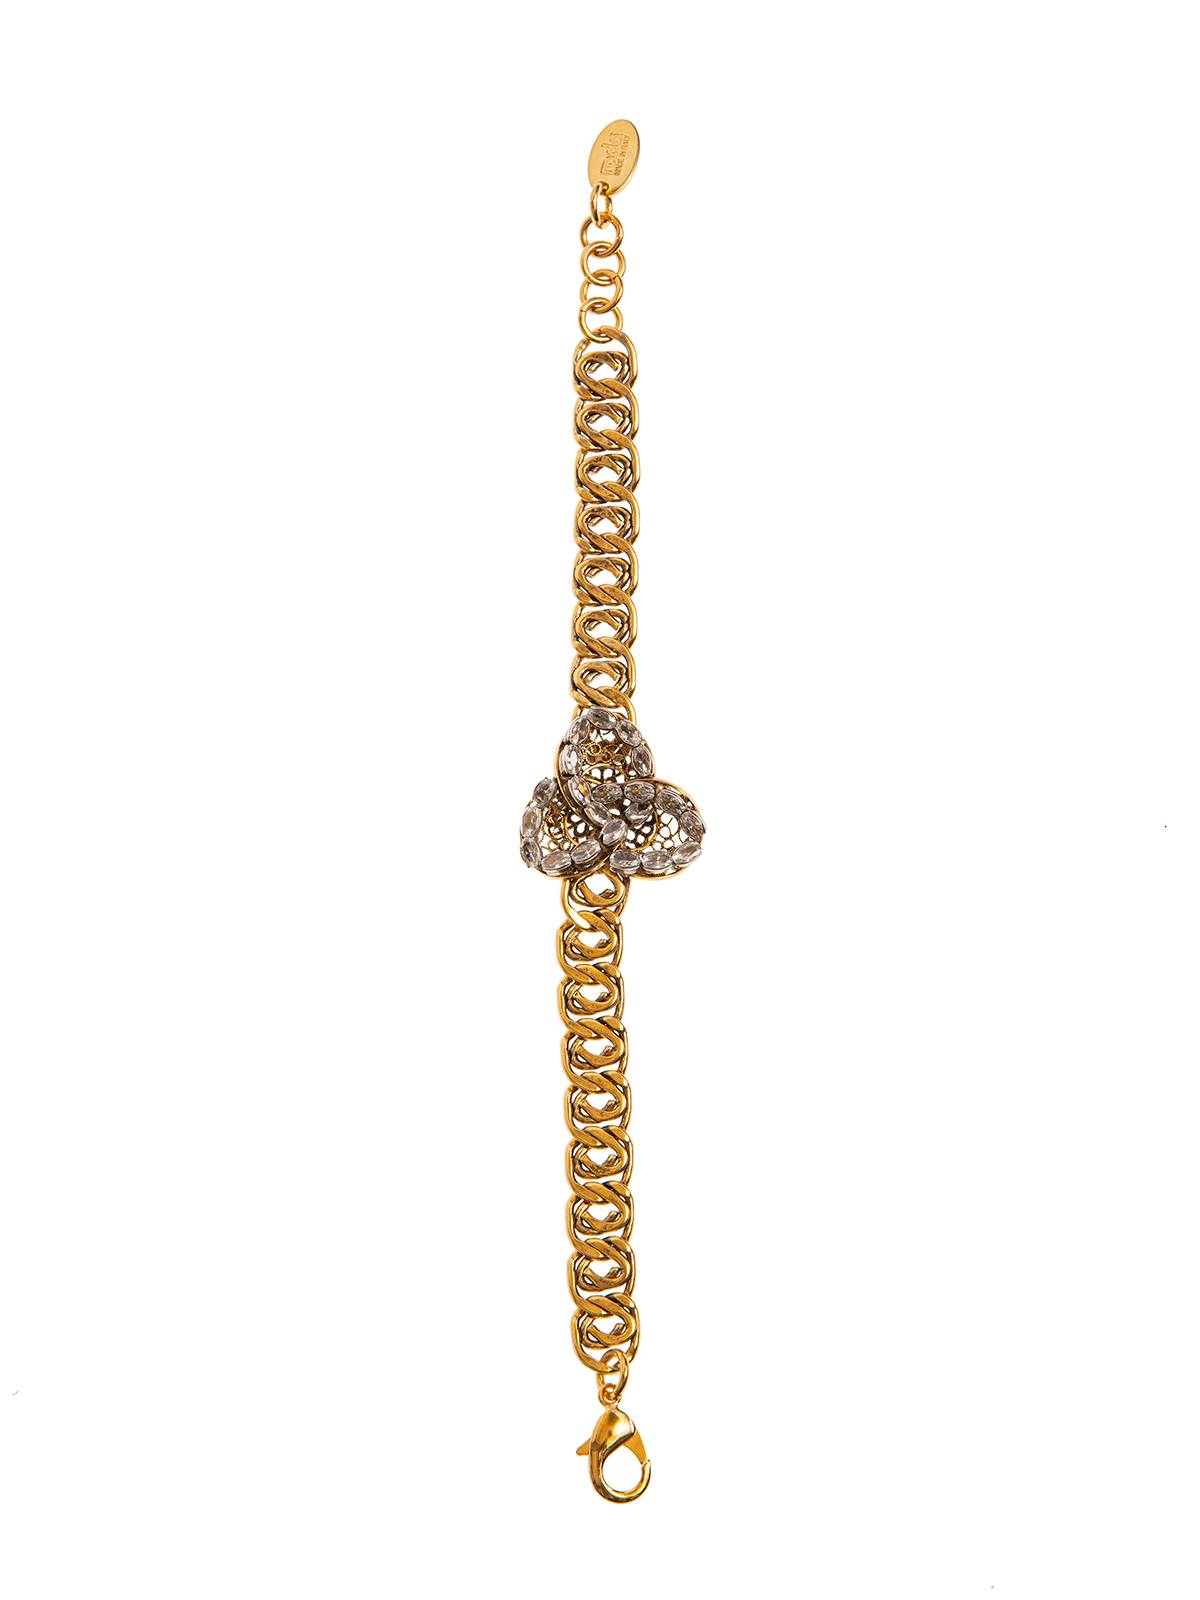 Chain bracelet with crystal petals